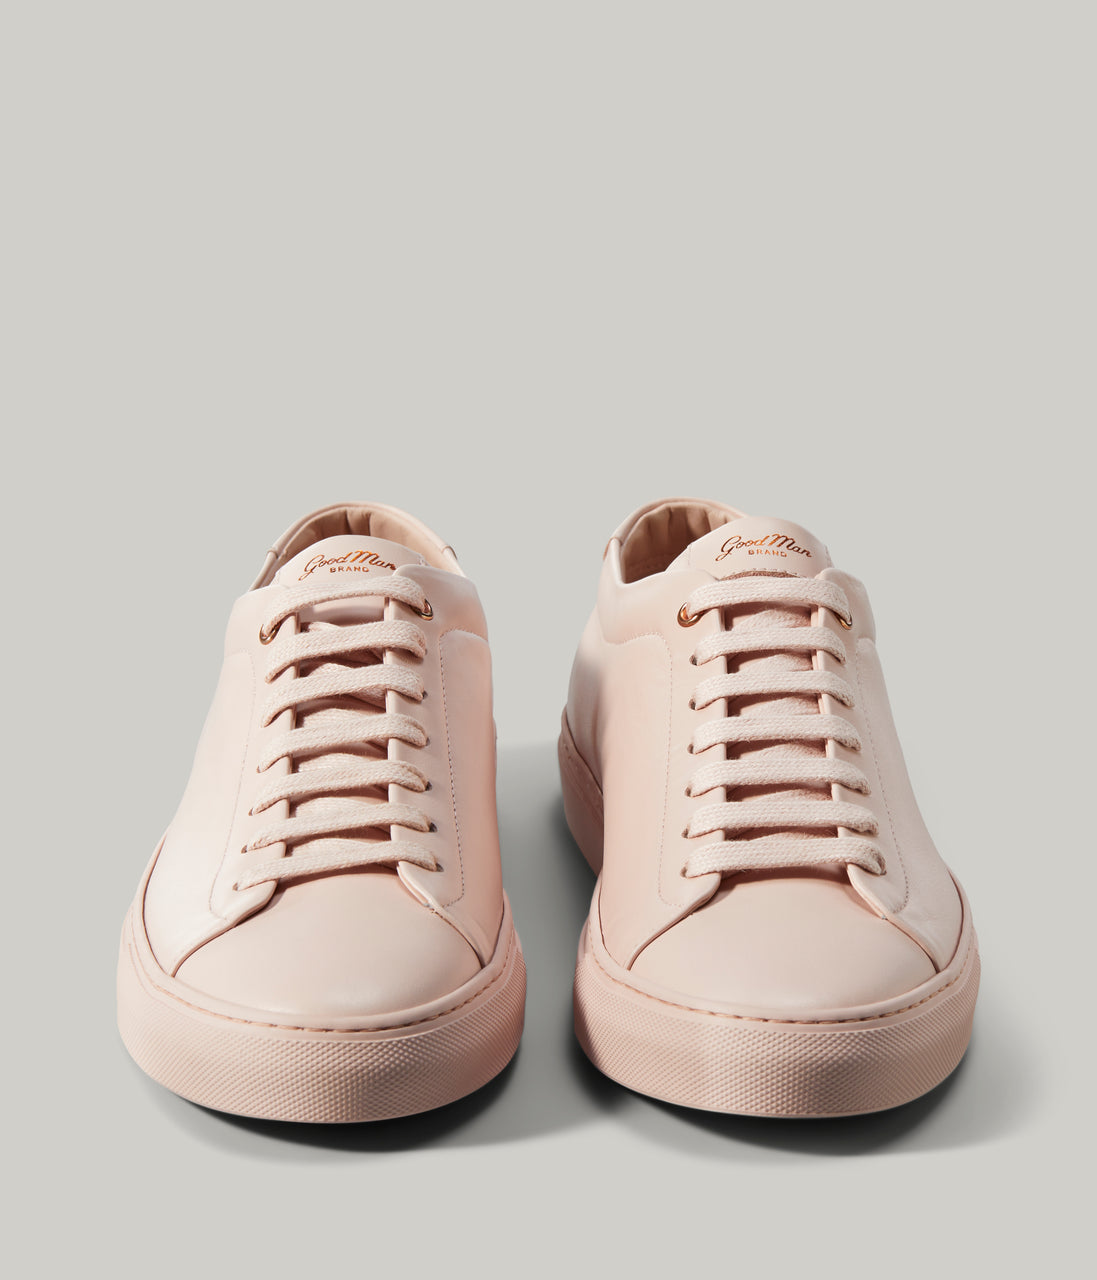 Edge Lo-Top Sneaker - Rose - Good Man Brand - Edge Lo-Top Sneaker - Rose